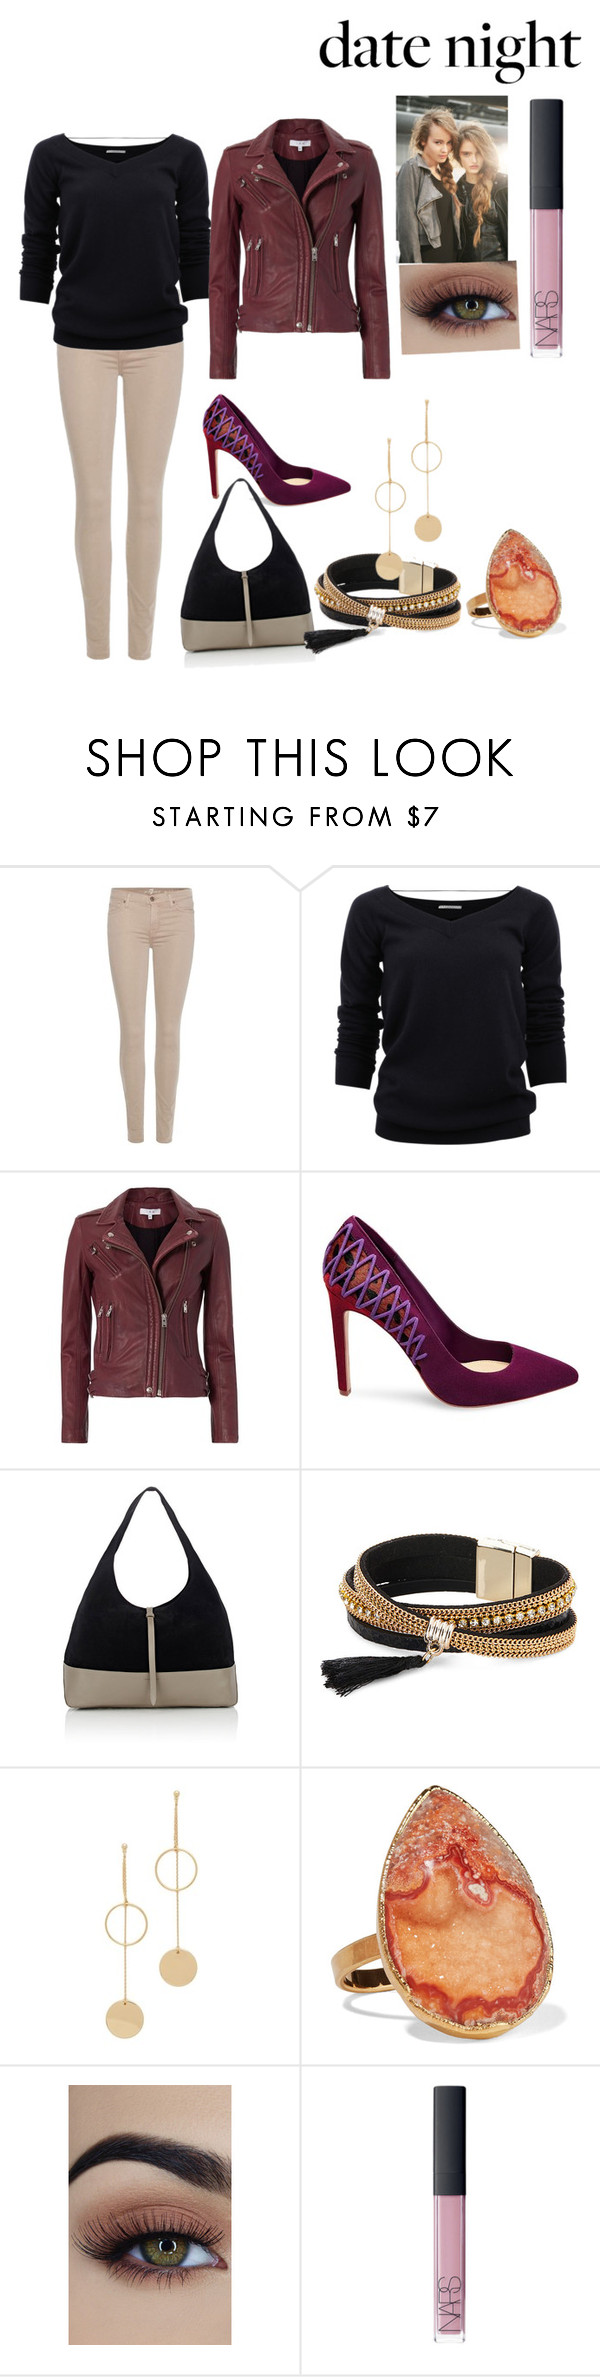 """Date Night: The Game"" by alainab2231 on Polyvore featuring 7 For All Mankind, Brunello Cucinelli, IRO, B Brian Atwood, Tomas Maier, Simons, Cloverpost, Dara Ettinger, NARS Cosmetics and DateNight"